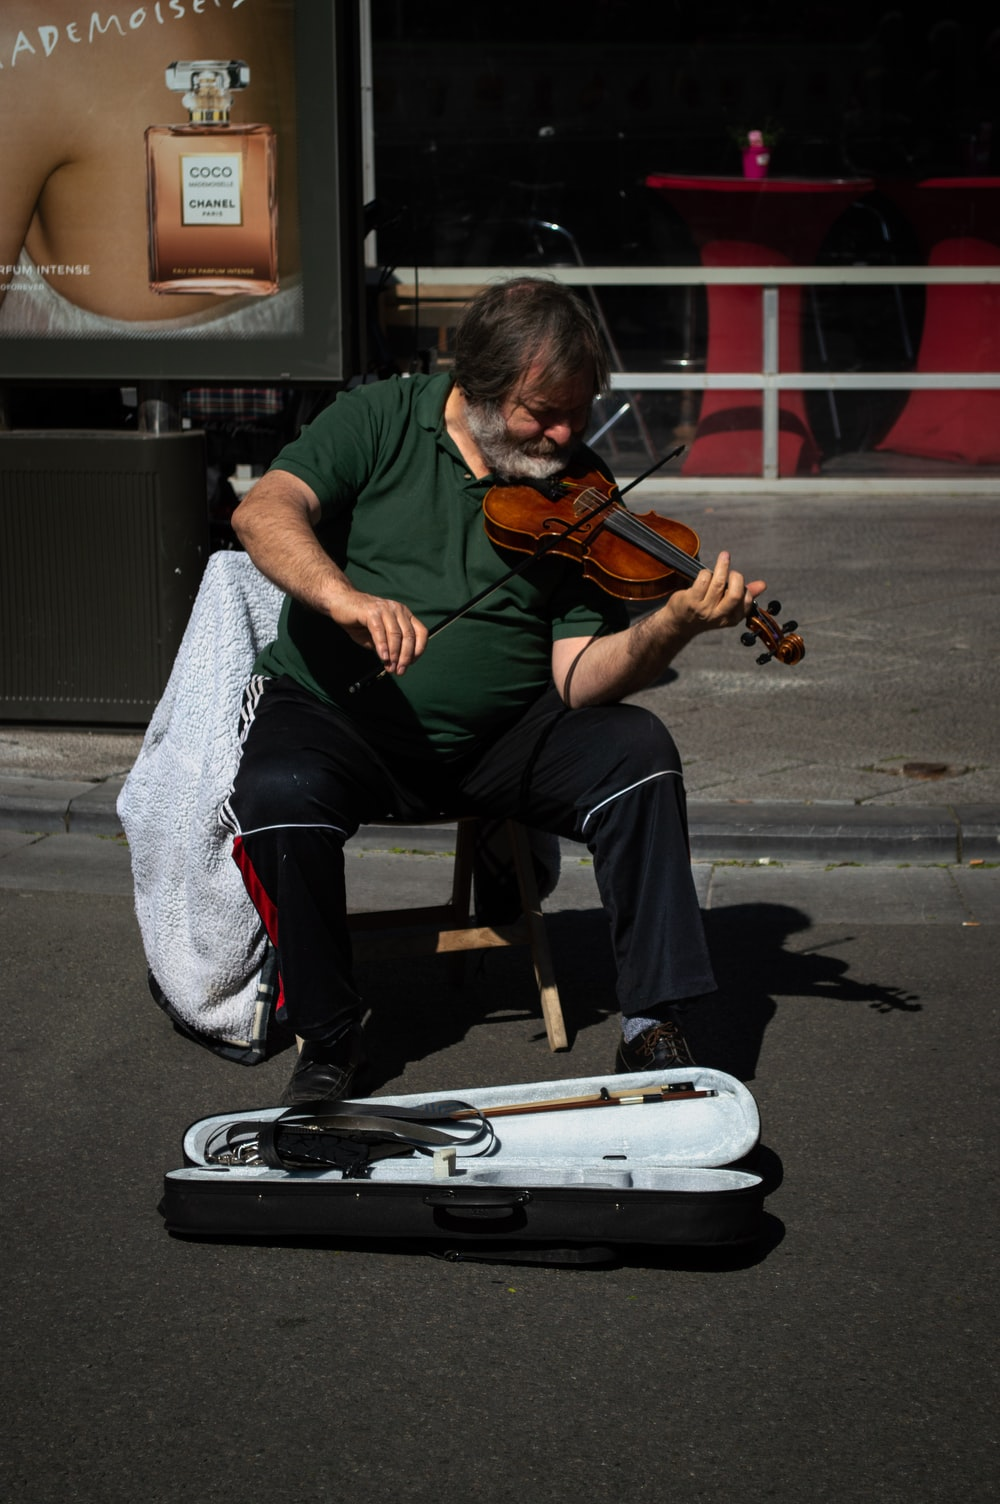 unknown person playing brown violin outdoors